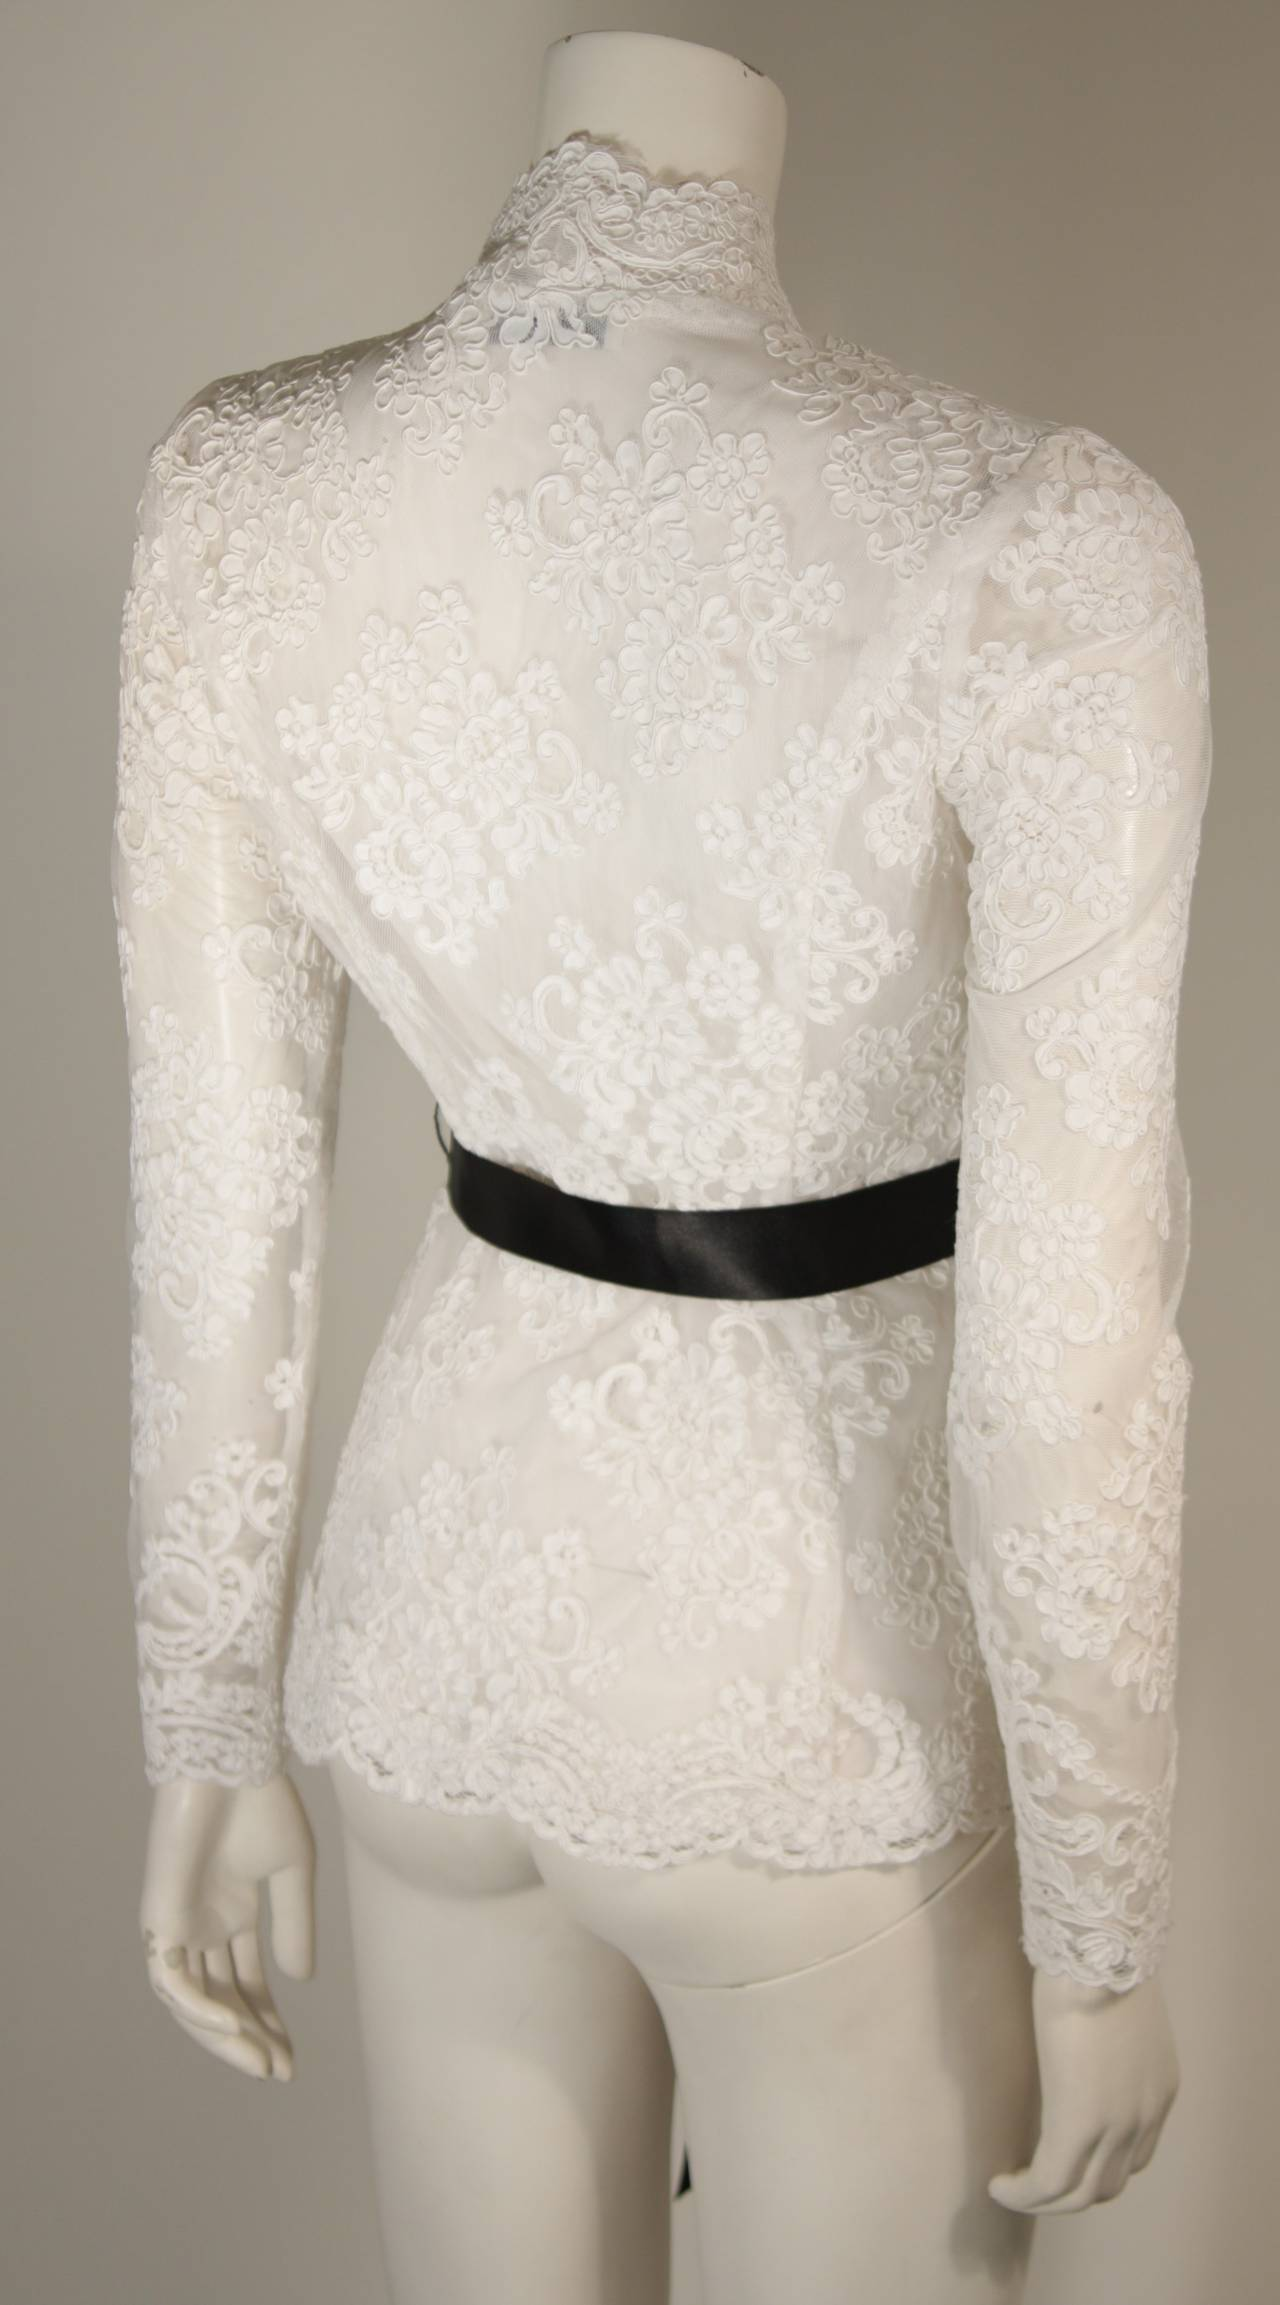 Victor Costa White Lace Scalloped Edge Long Sleeve Blouse Size 4 6 8 In Excellent Condition For Sale In Los Angeles, CA